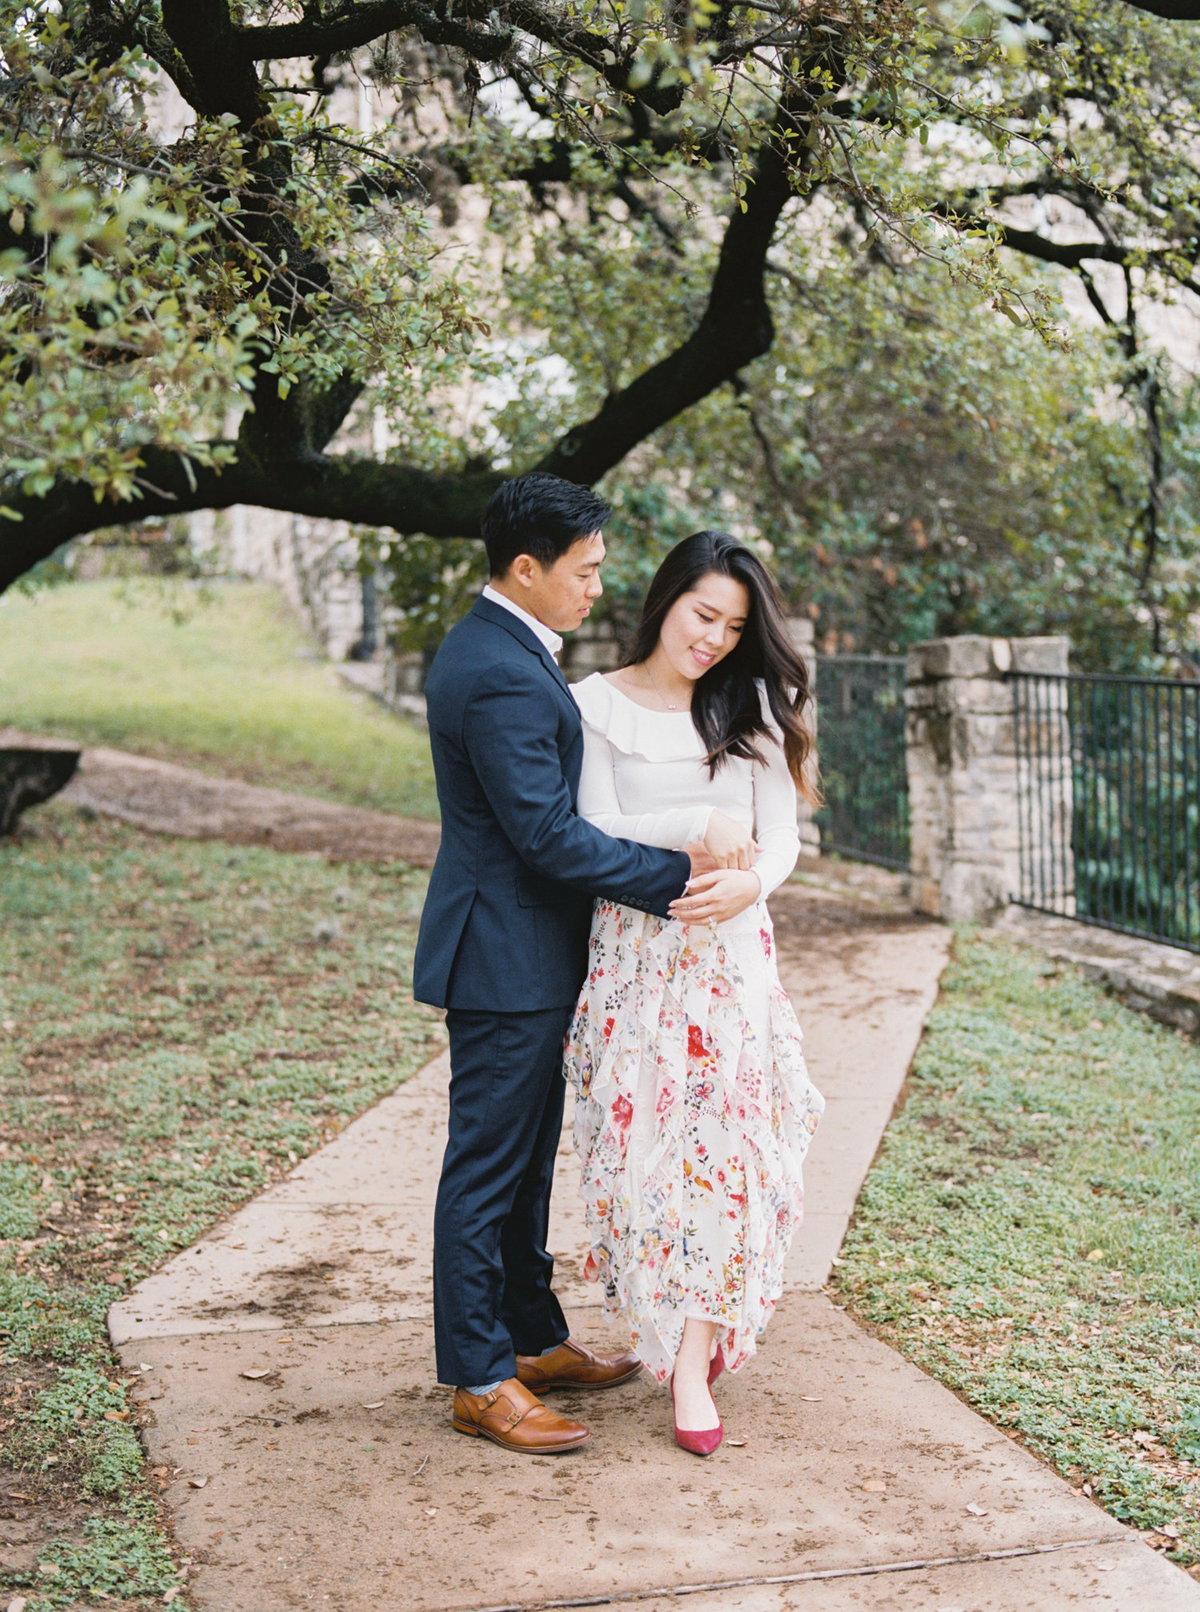 Engagement Session in Austin, Texas